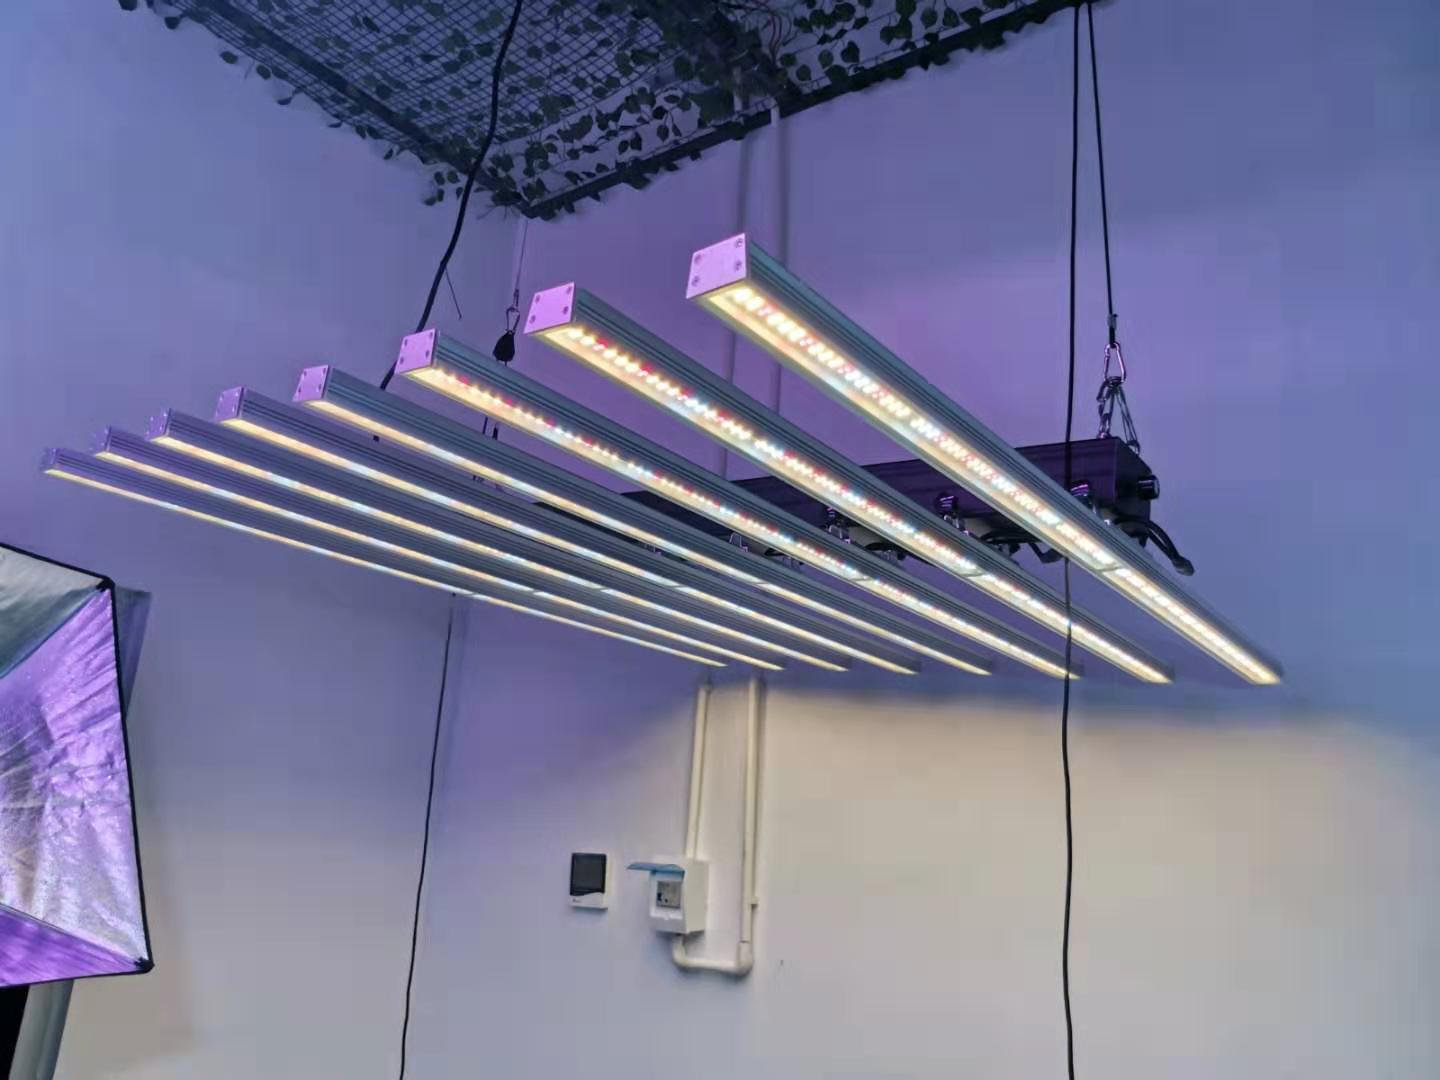 Octopus LED Grow light